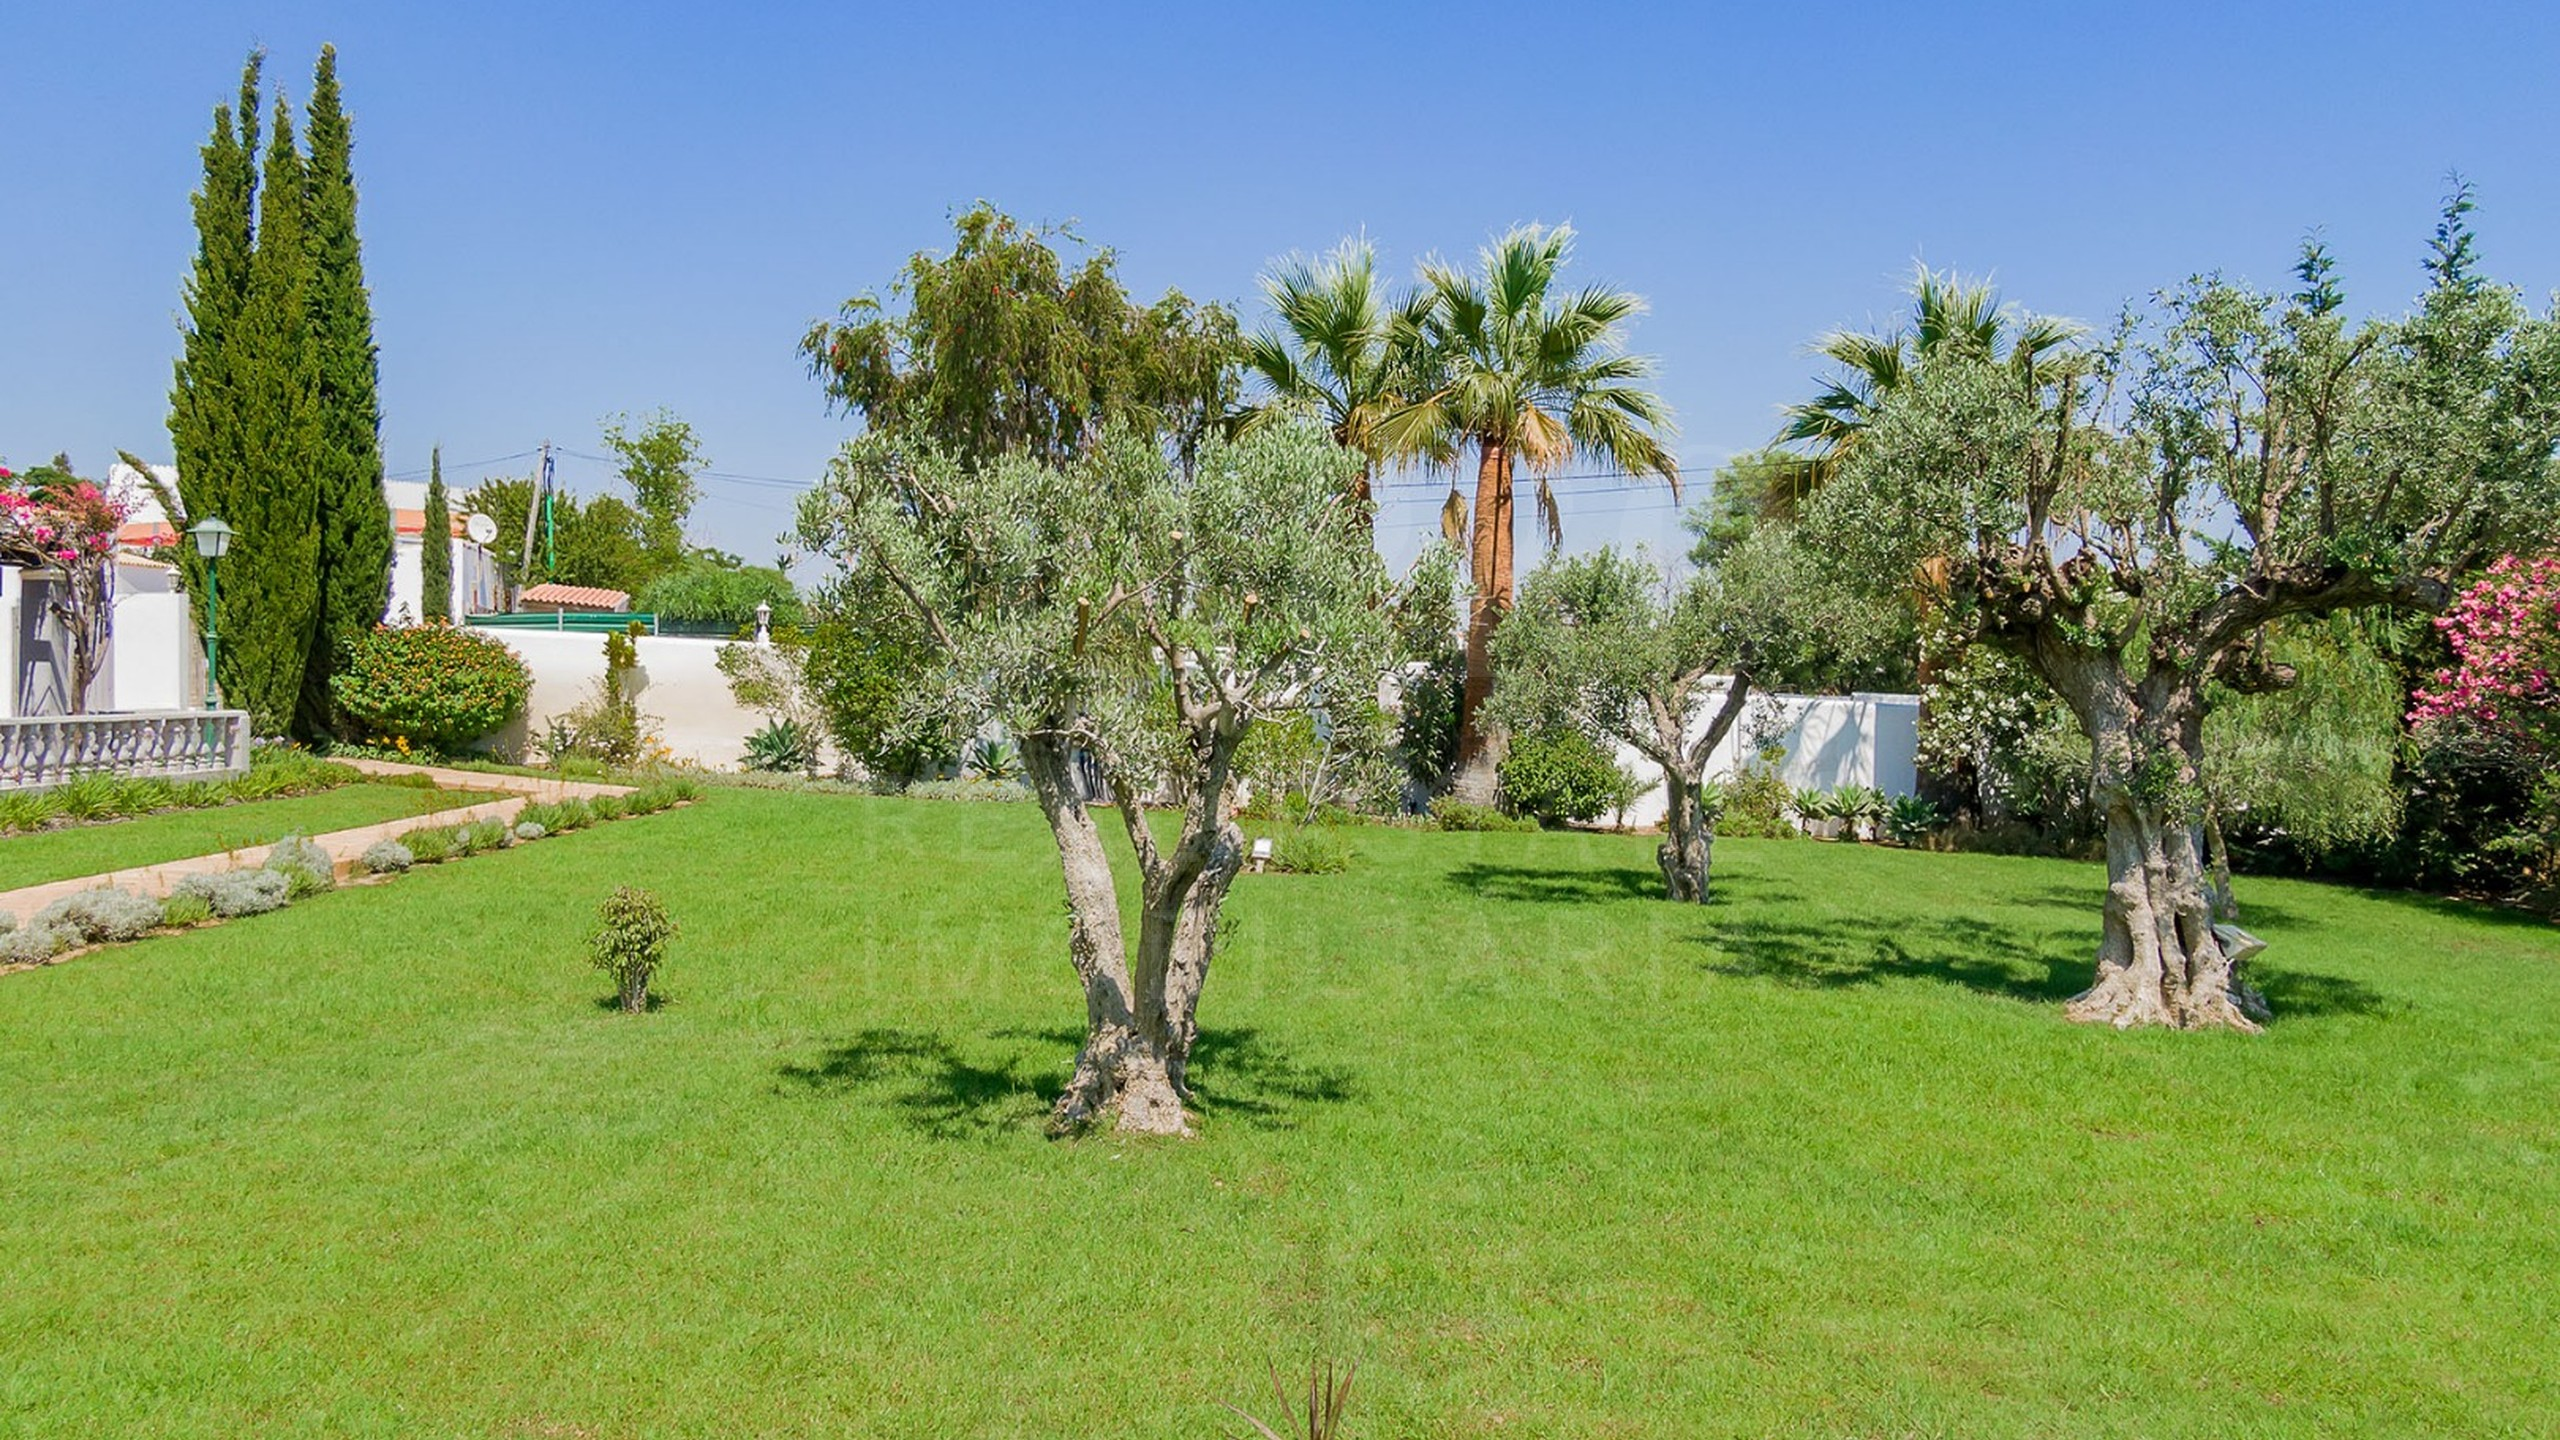 Garden with olive trees and grass